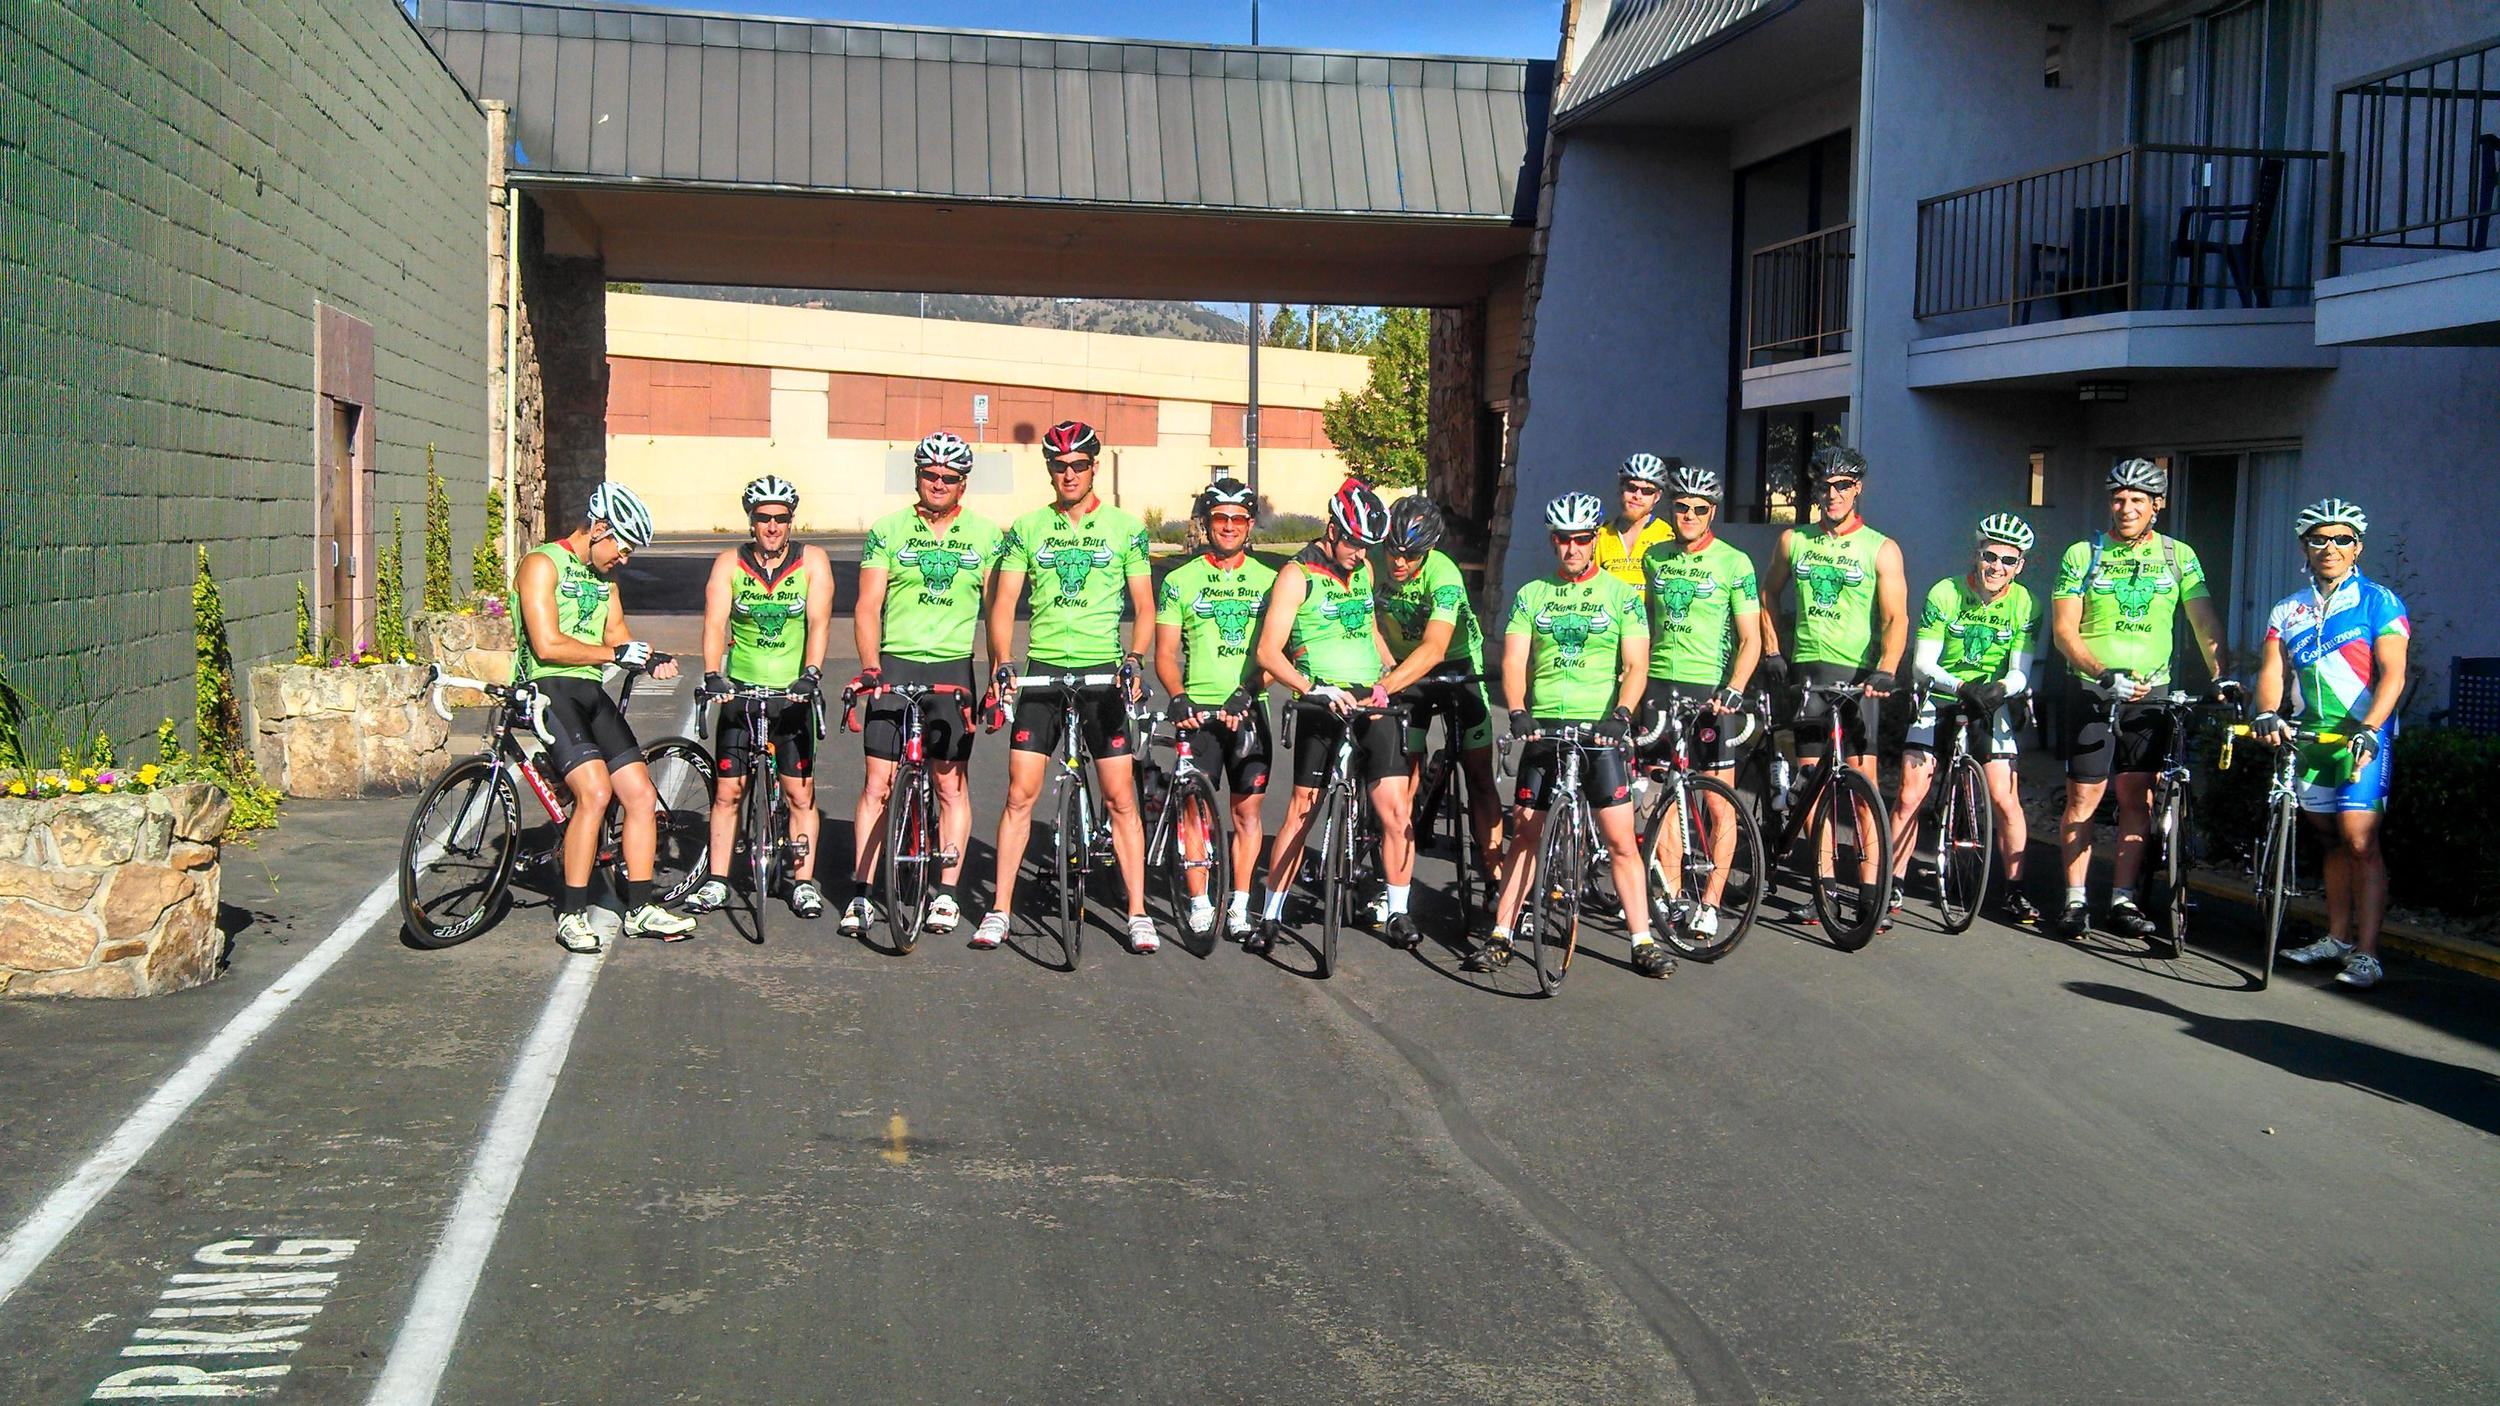 Doug Campbell (pictured 5th from the right) gets ready to lead the group up Left Hand Canyon in Boulder.